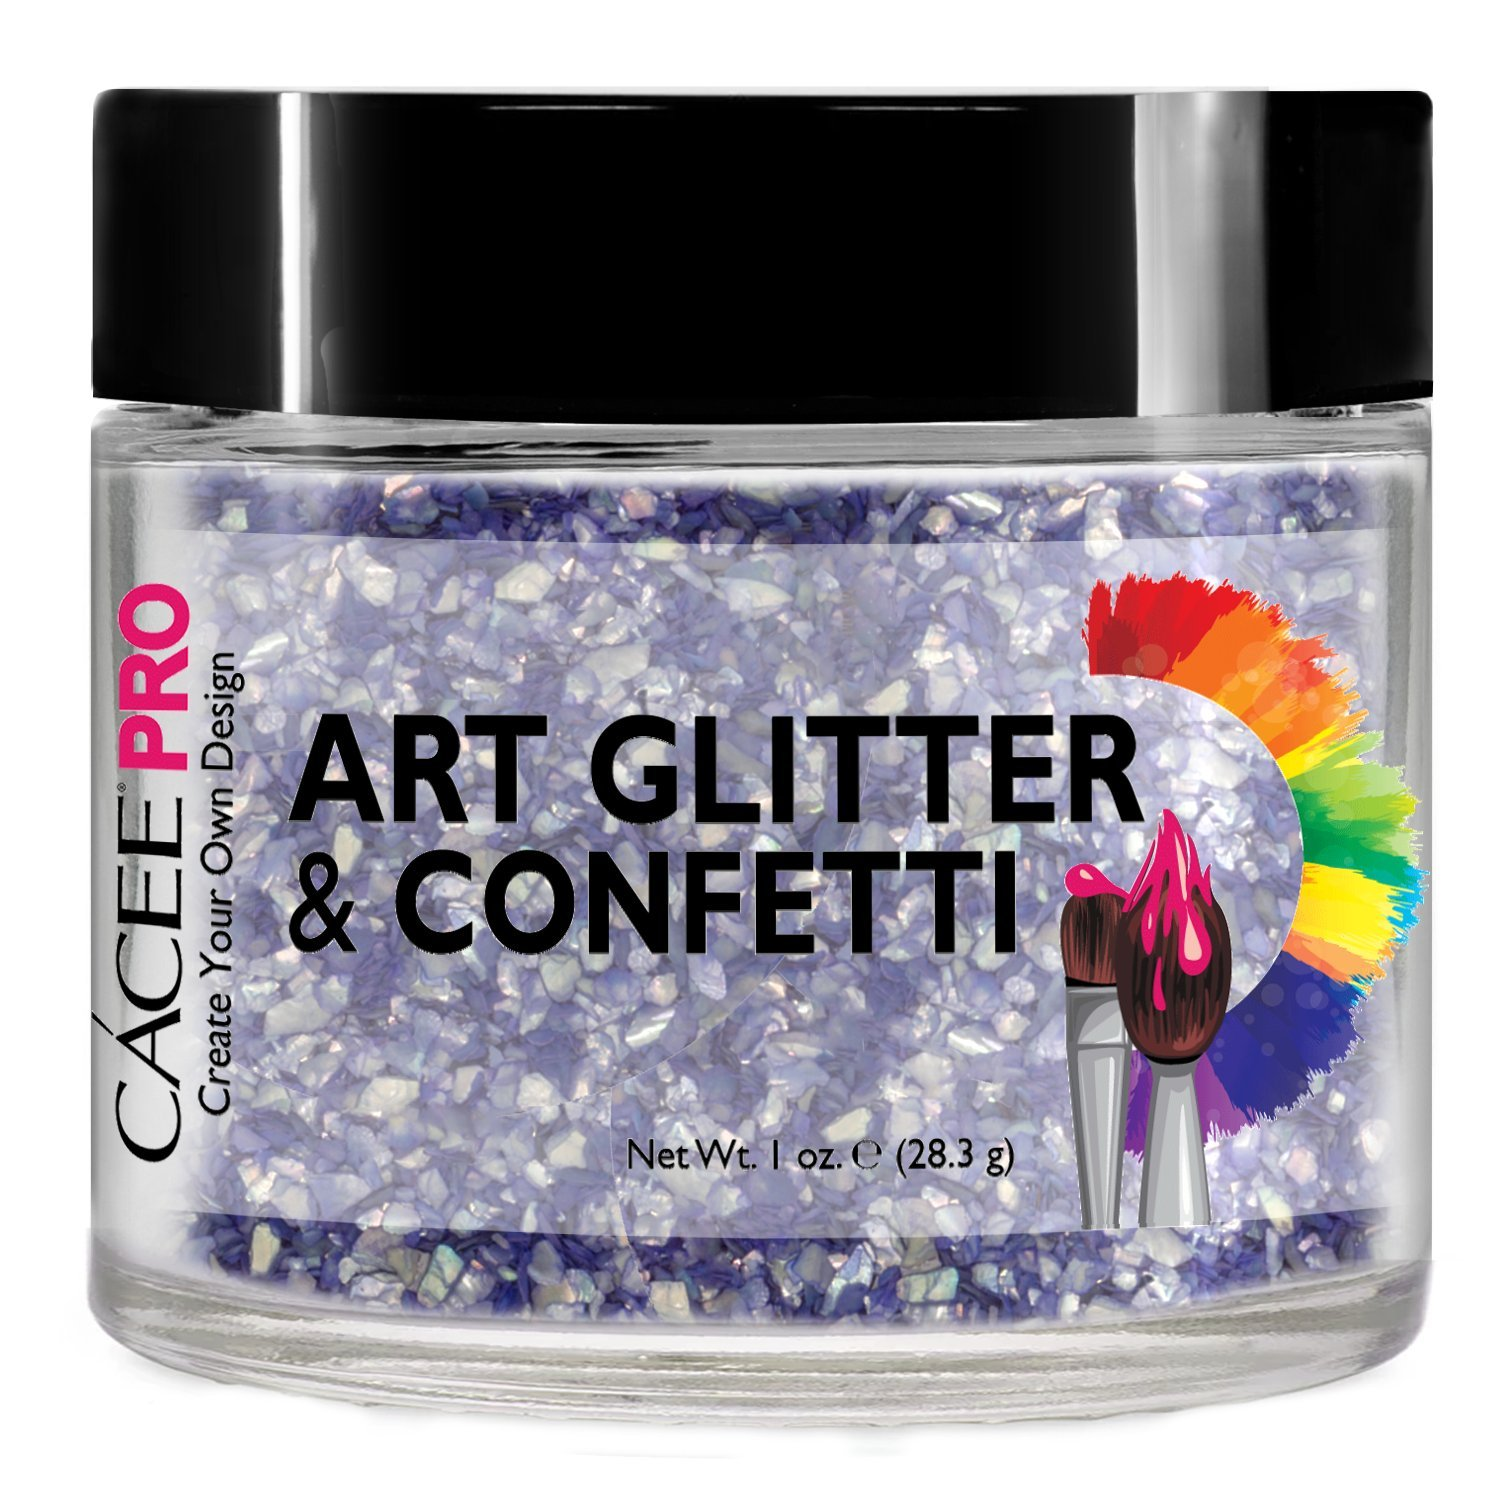 Nail Glitter 1 oz by Cacee Art & Confetti (Holographic, Silver, Gold, Chunk, Irridescent, Dust, Unicorn) for Nail Art, Cosmetic, Festivals, and Party (#225 Pastel Blue Crushed Shell)